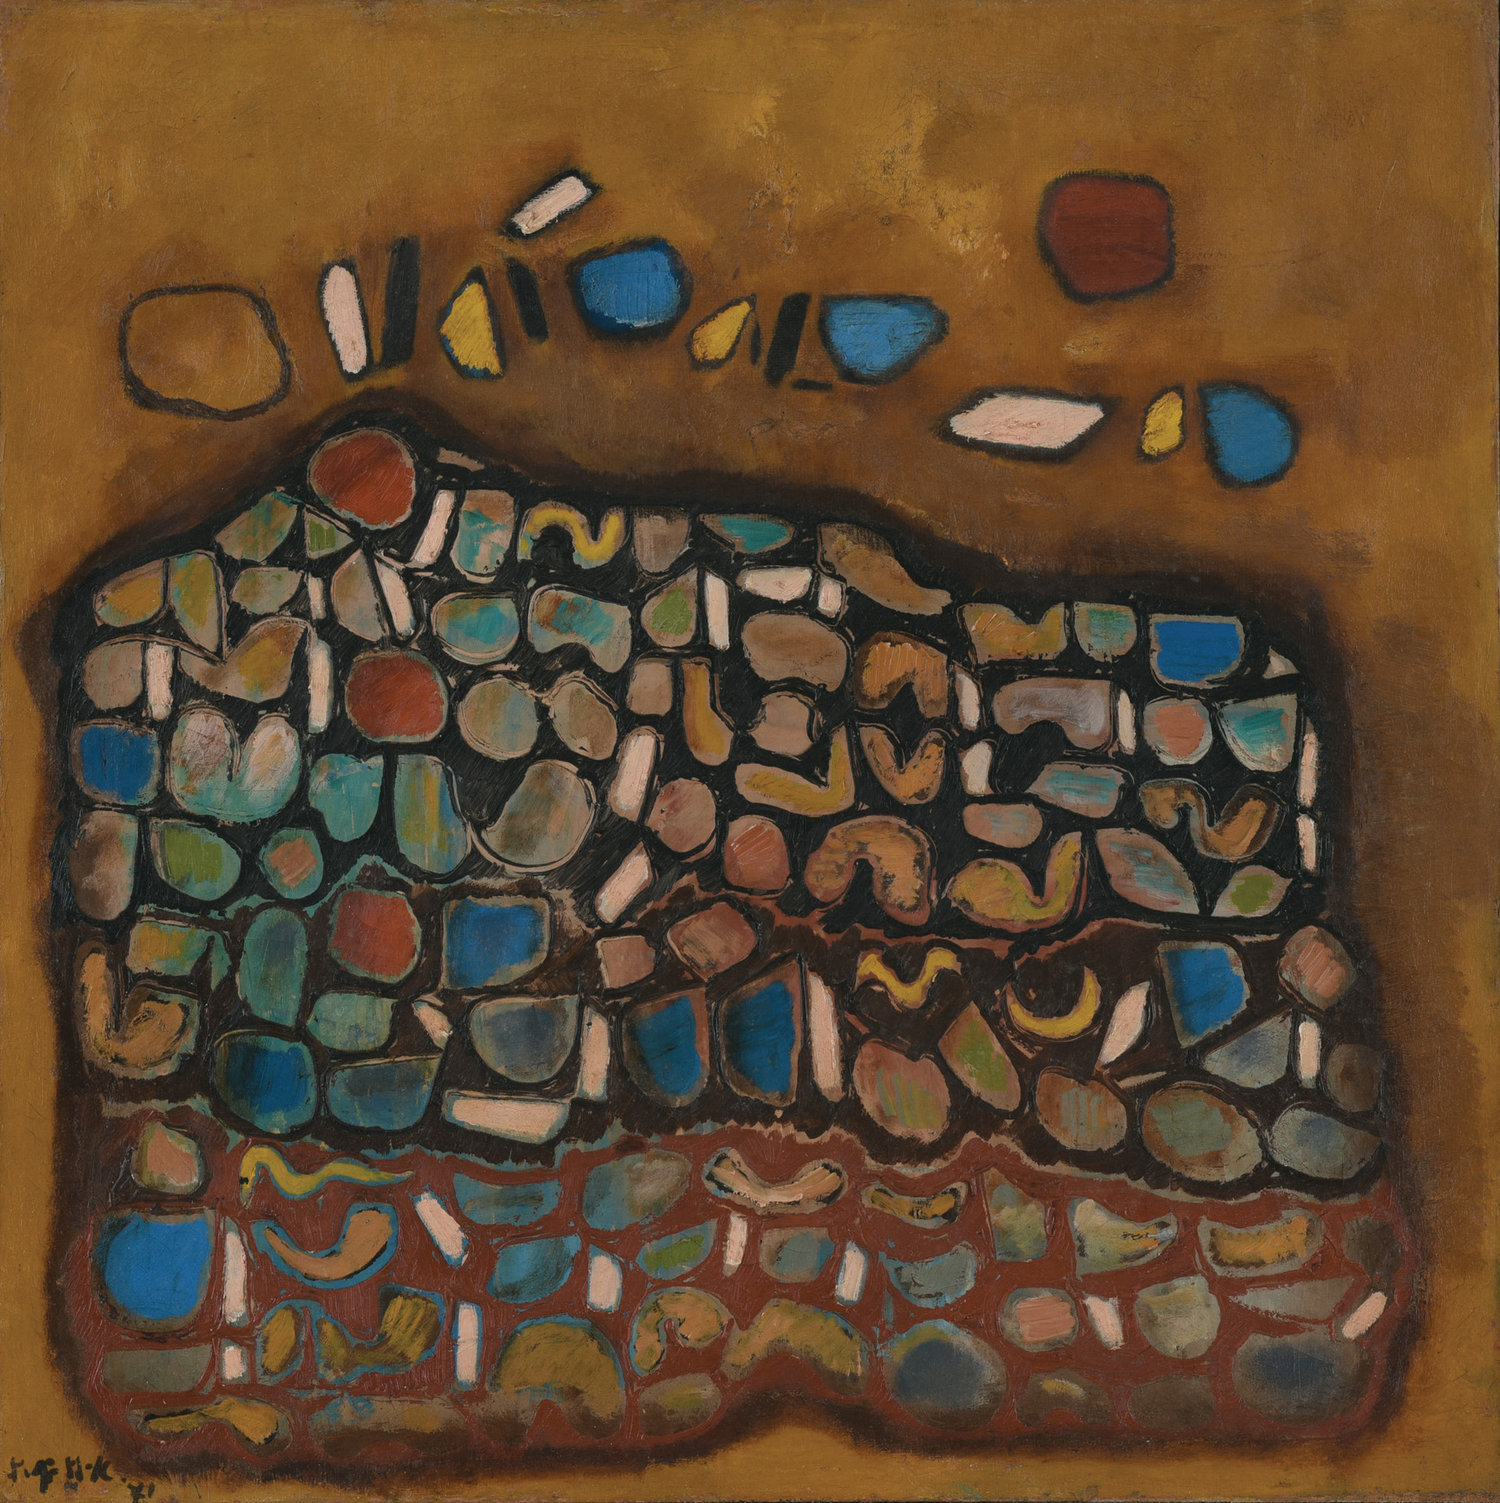 Fadjar Sidik, Dynamics, oil on canvas, 65 x 65 cm, 1971